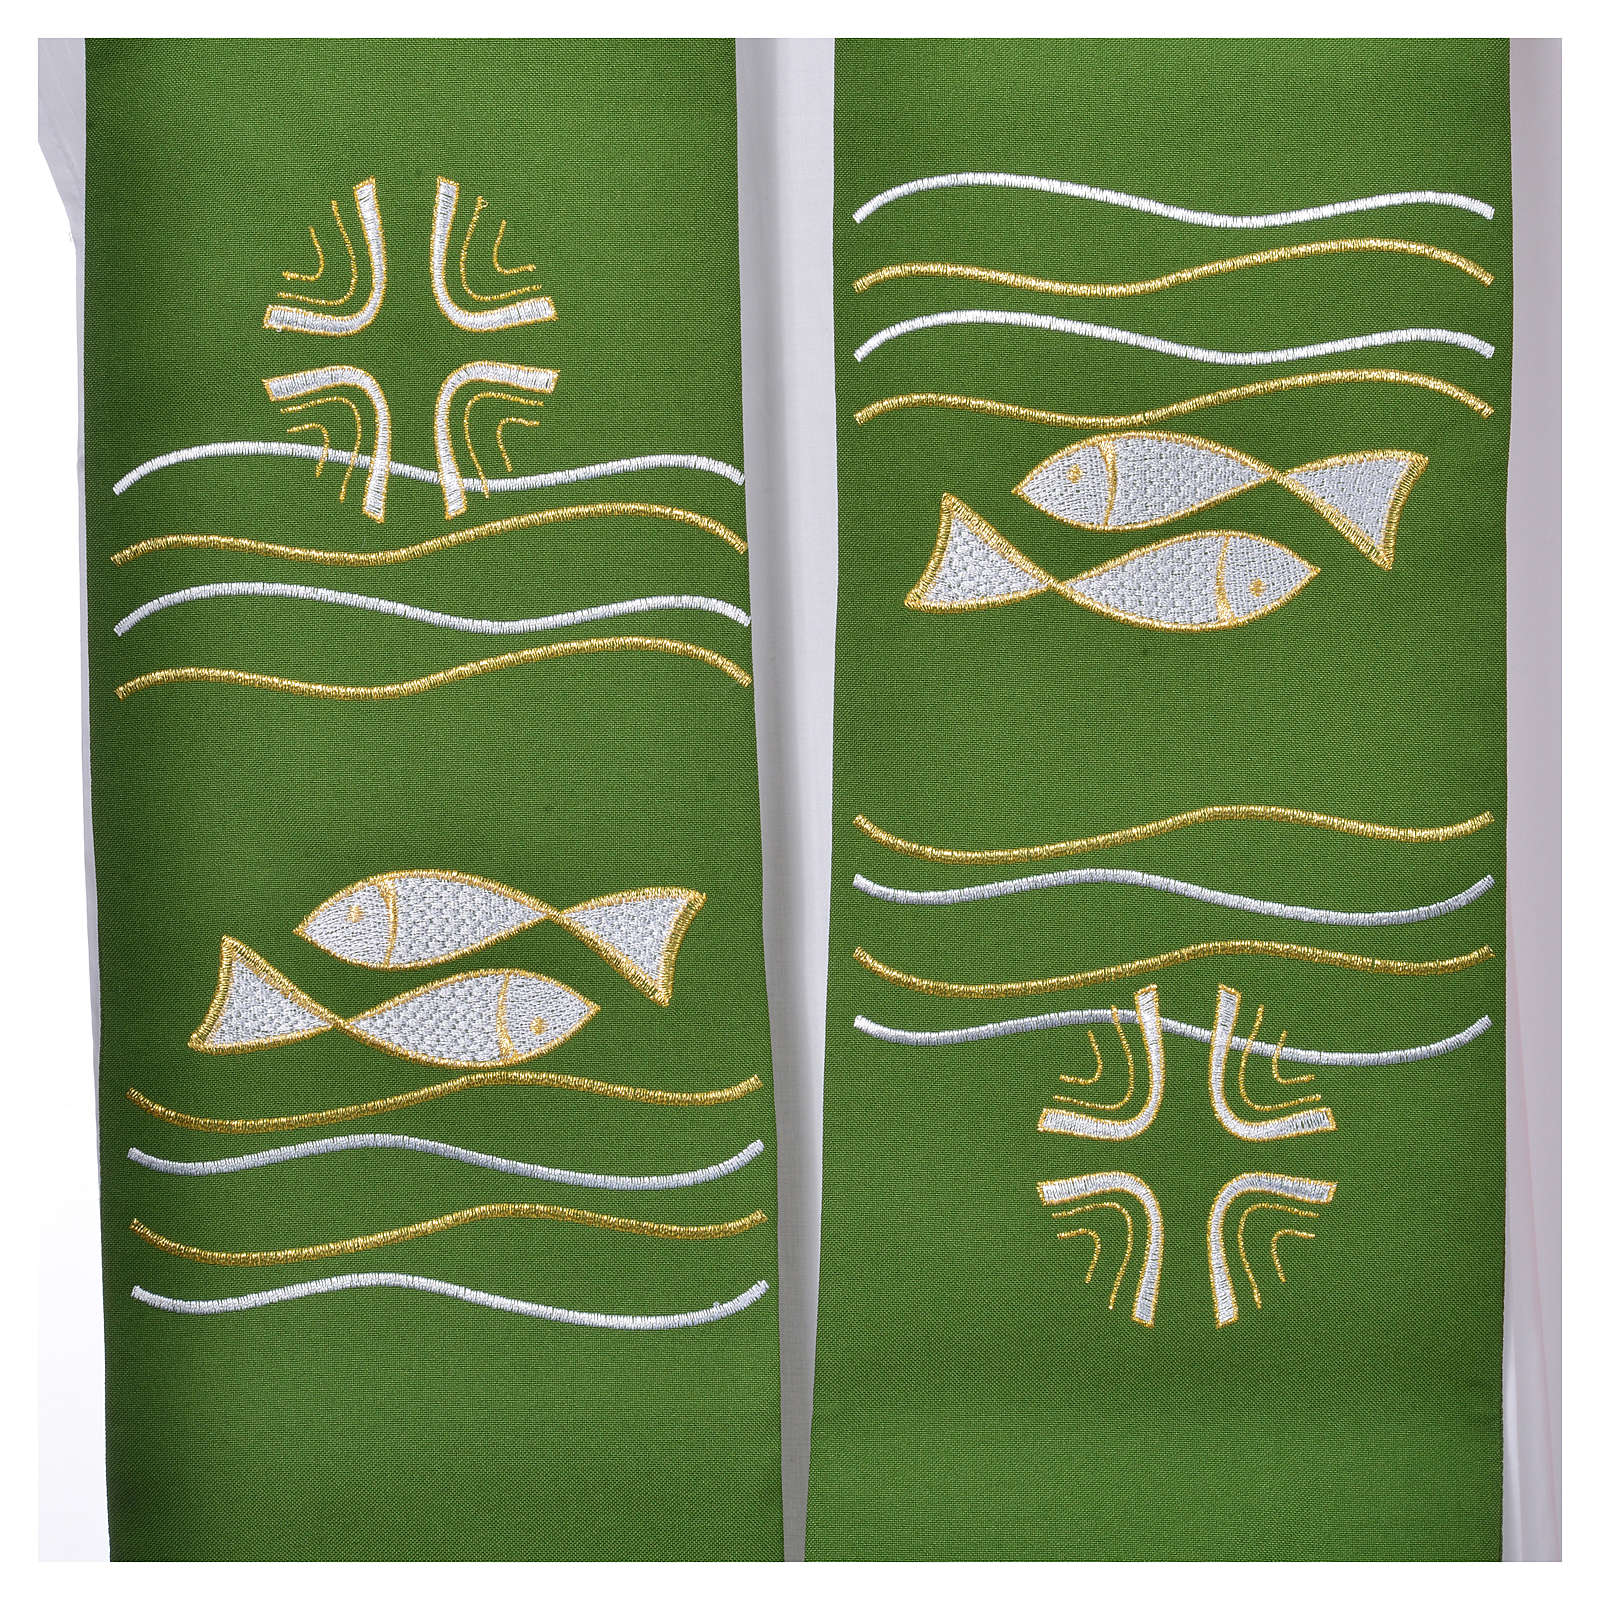 Stole, 80% polyester 20% wool with fish and cross decoration 4